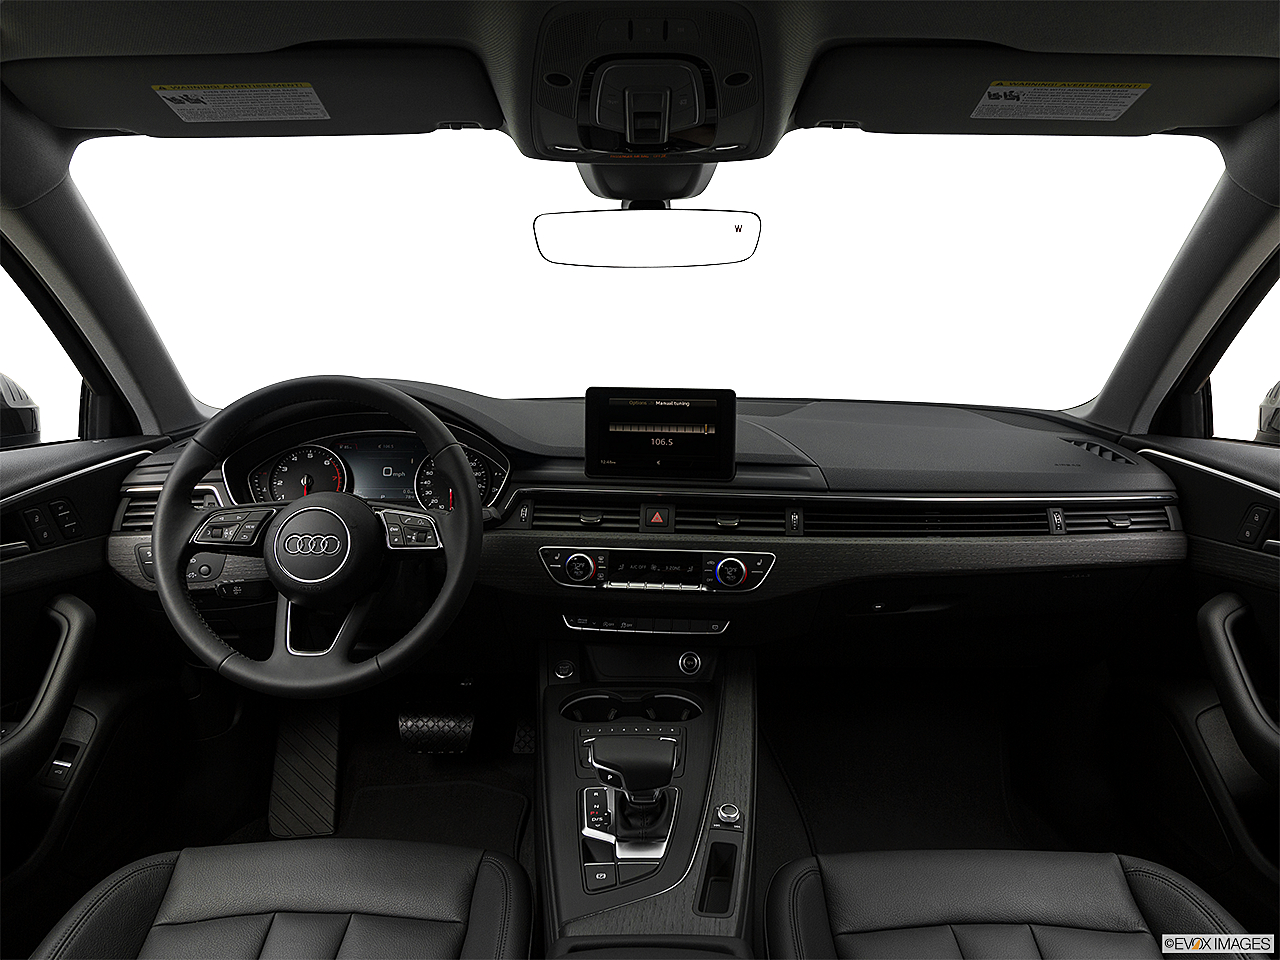 2018 Audi A4 Premium 2.0 TFSI ultra, centered wide dash shot